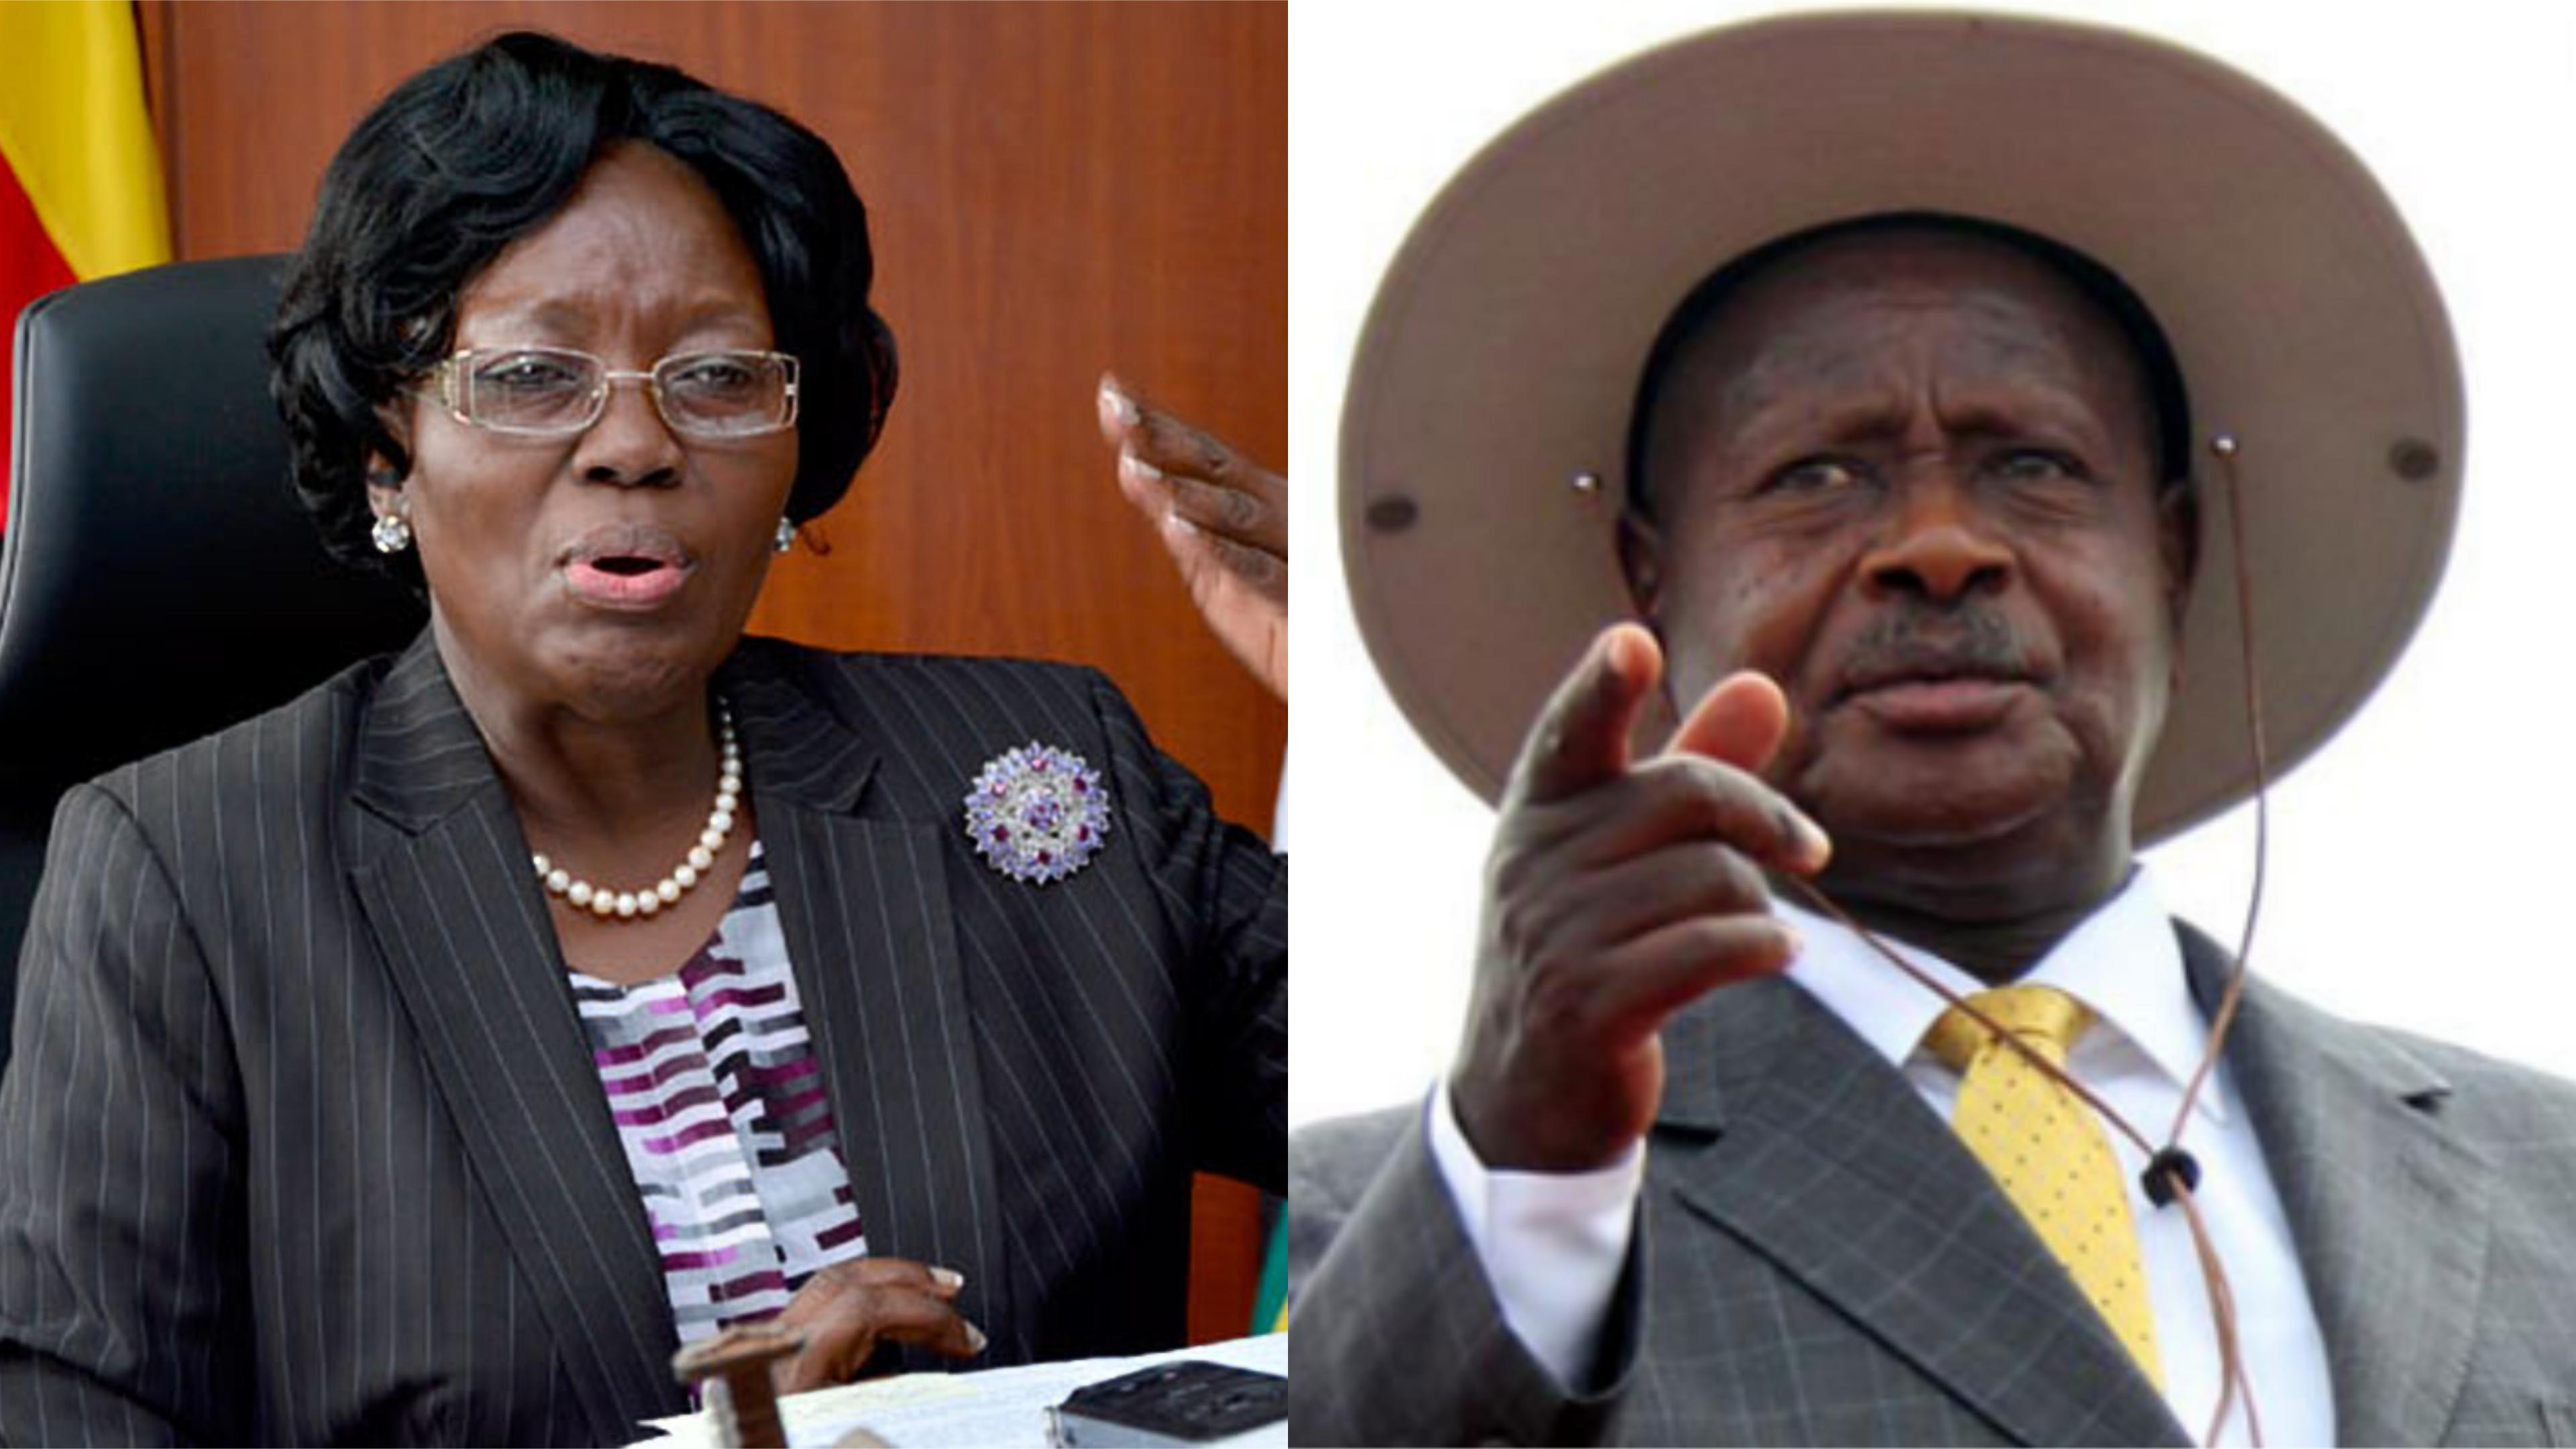 Speaker of Parliament, Rt. Hon. Rebecca Kadaga has cautioned legislators against heckling President Museveni ahead of the State of Nation address slated for Thursday. (PHOTO/File)